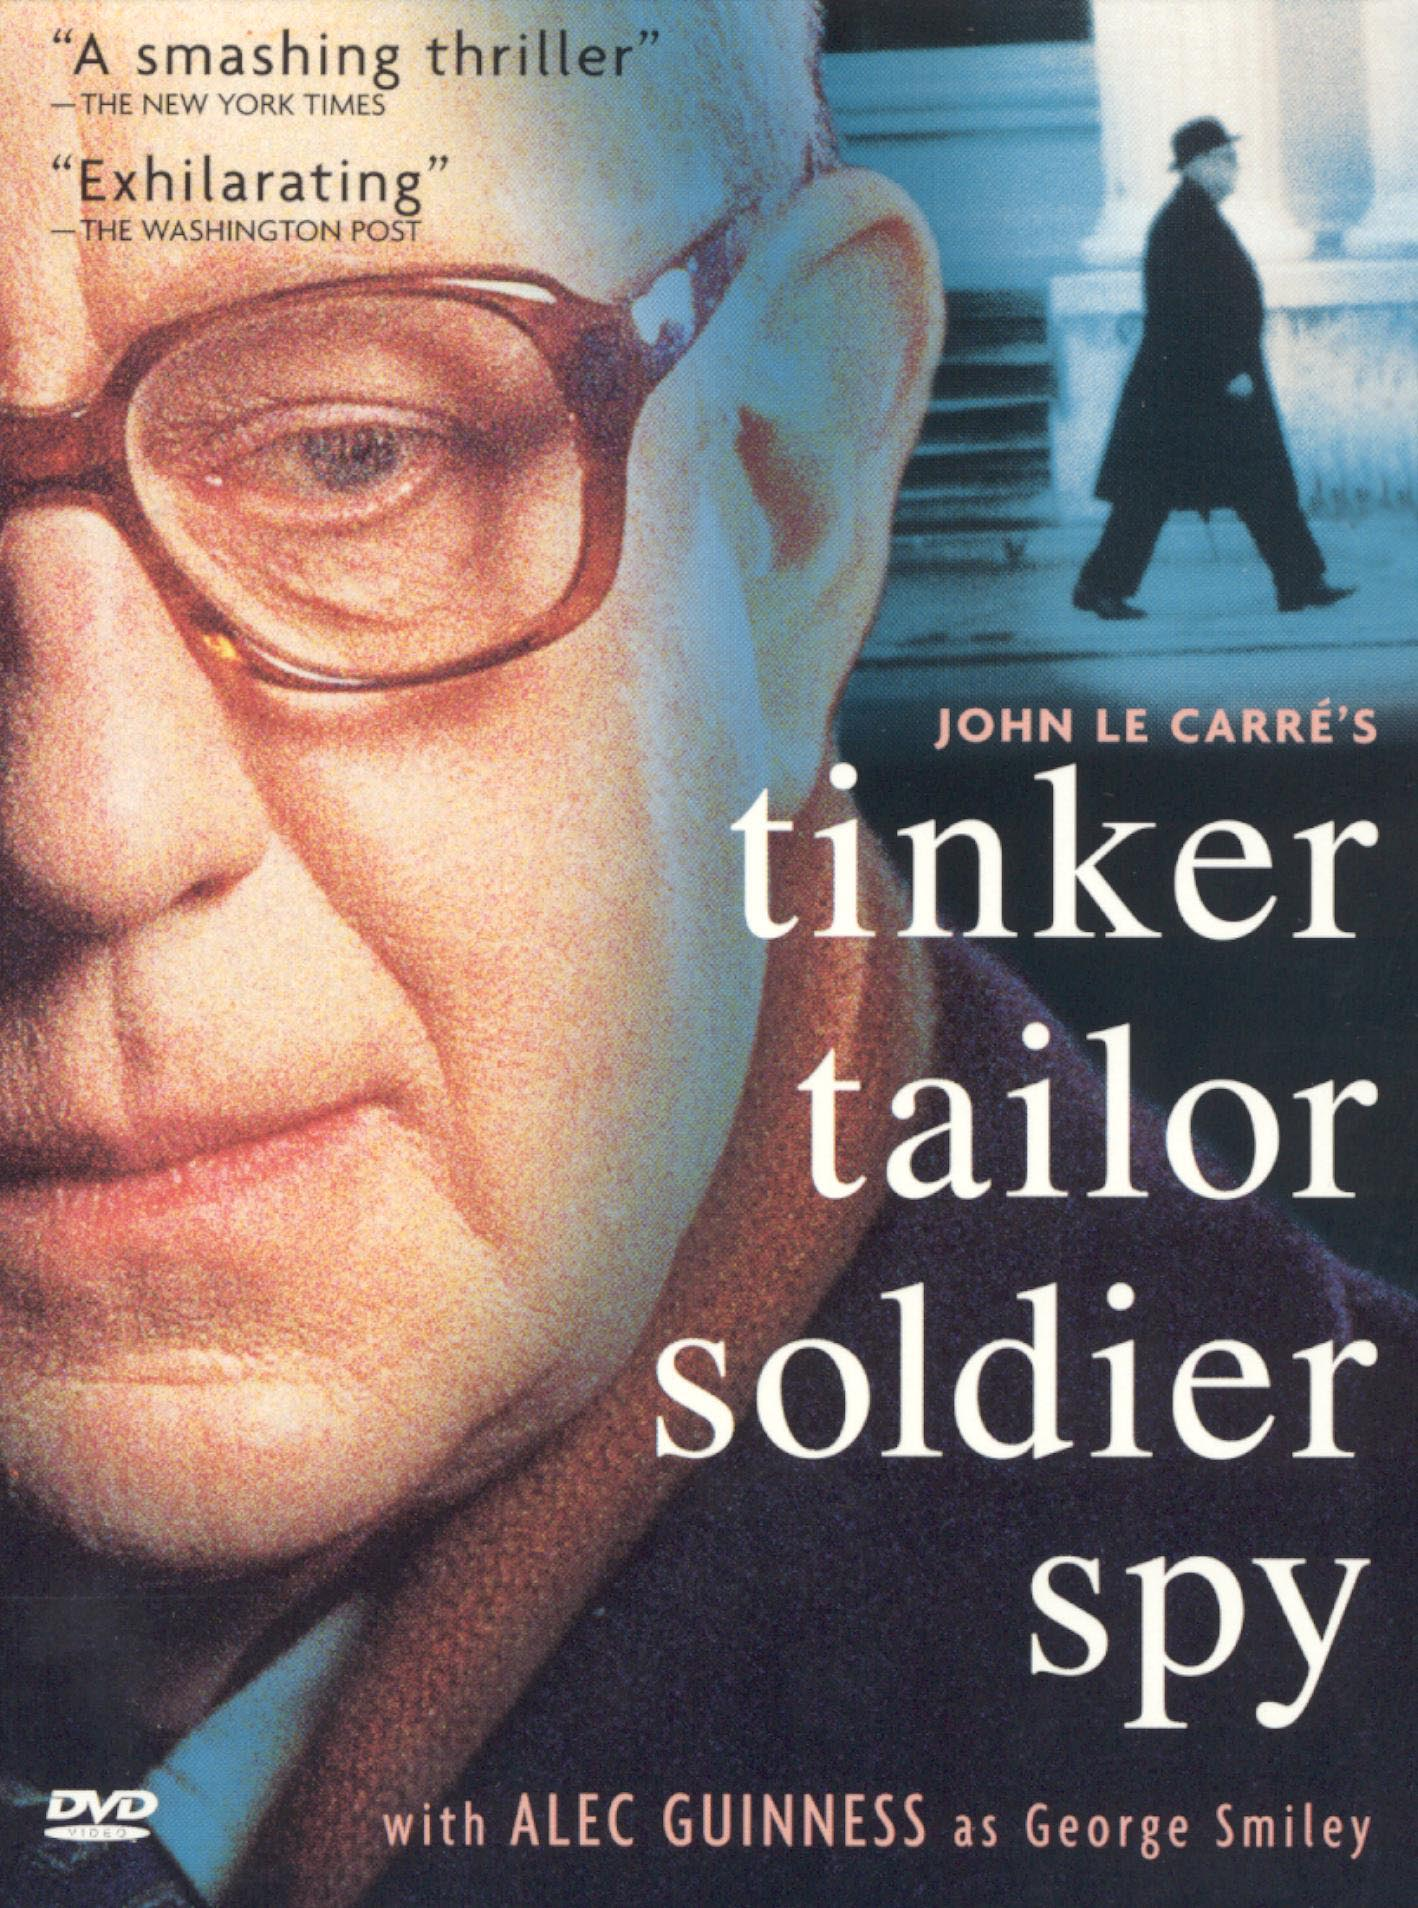 Tinker Tailor Soldier Spy (miniseries) - Wikipedia